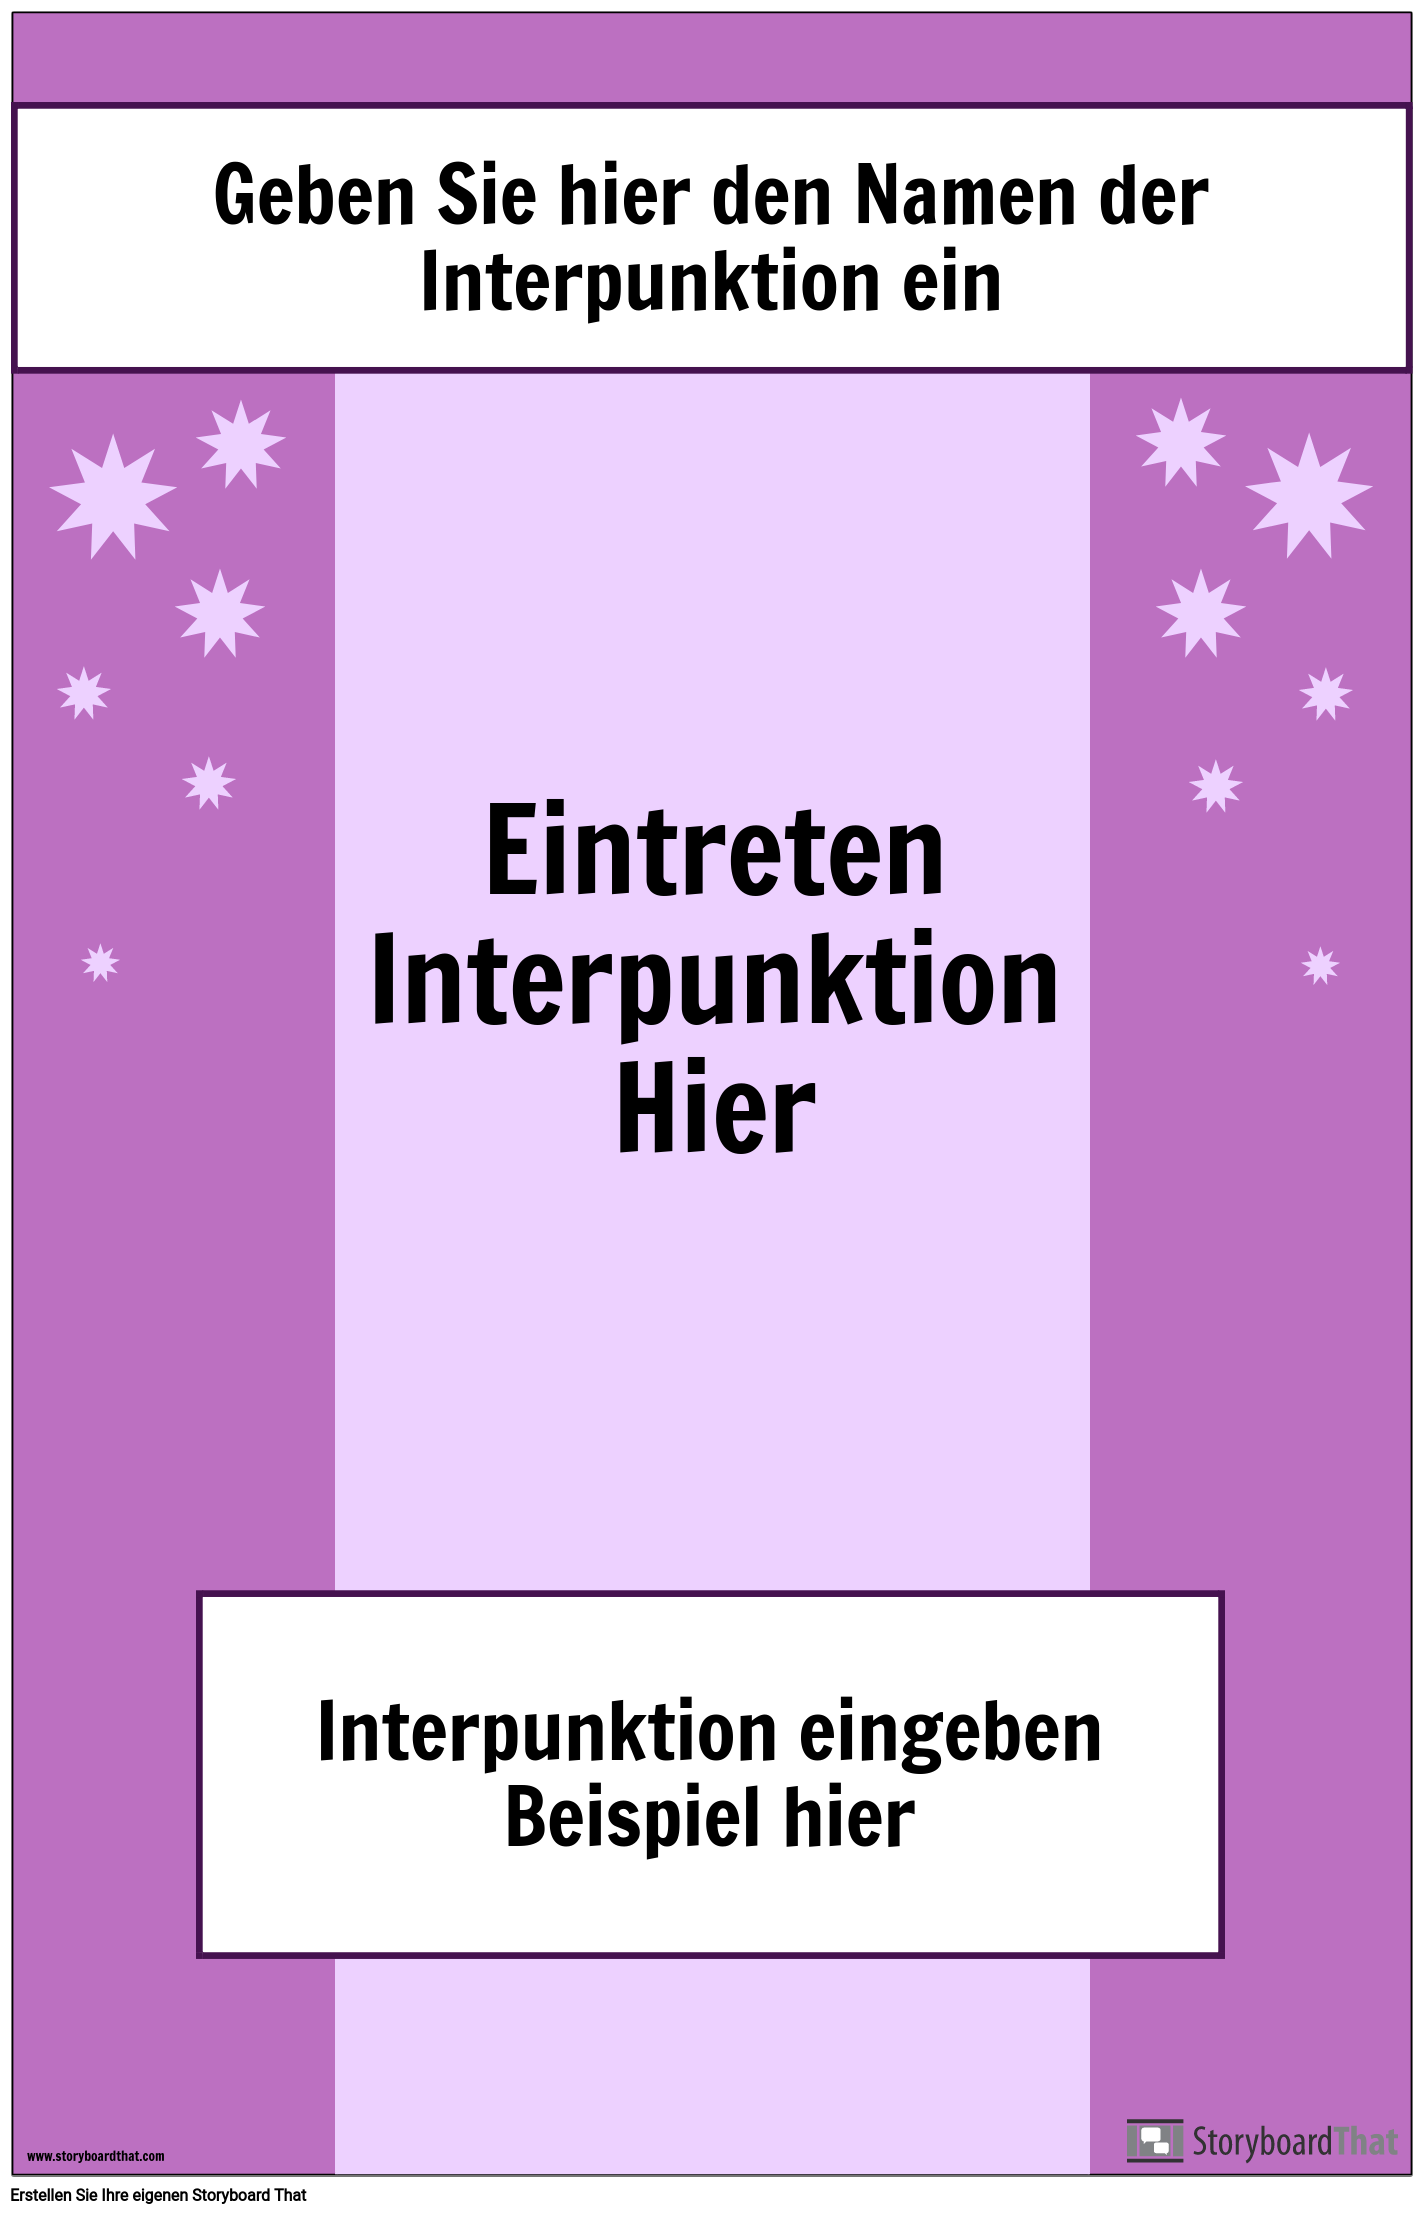 Interpunktionsplakat 2